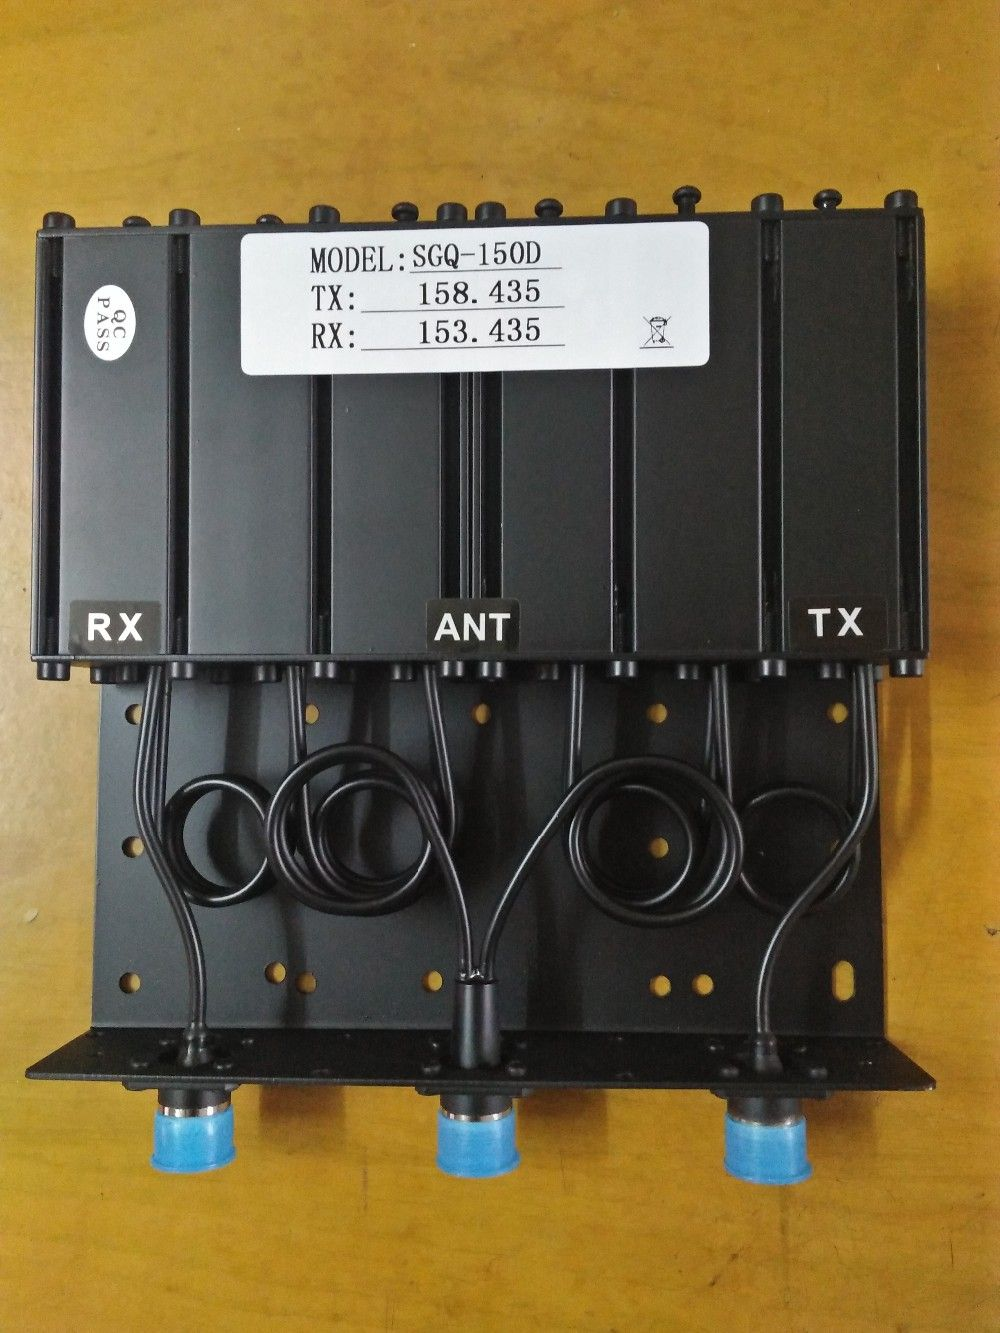 Stable Vhf 50watt Sgq-150d Duplexer For Radio Repeater Or Mobile